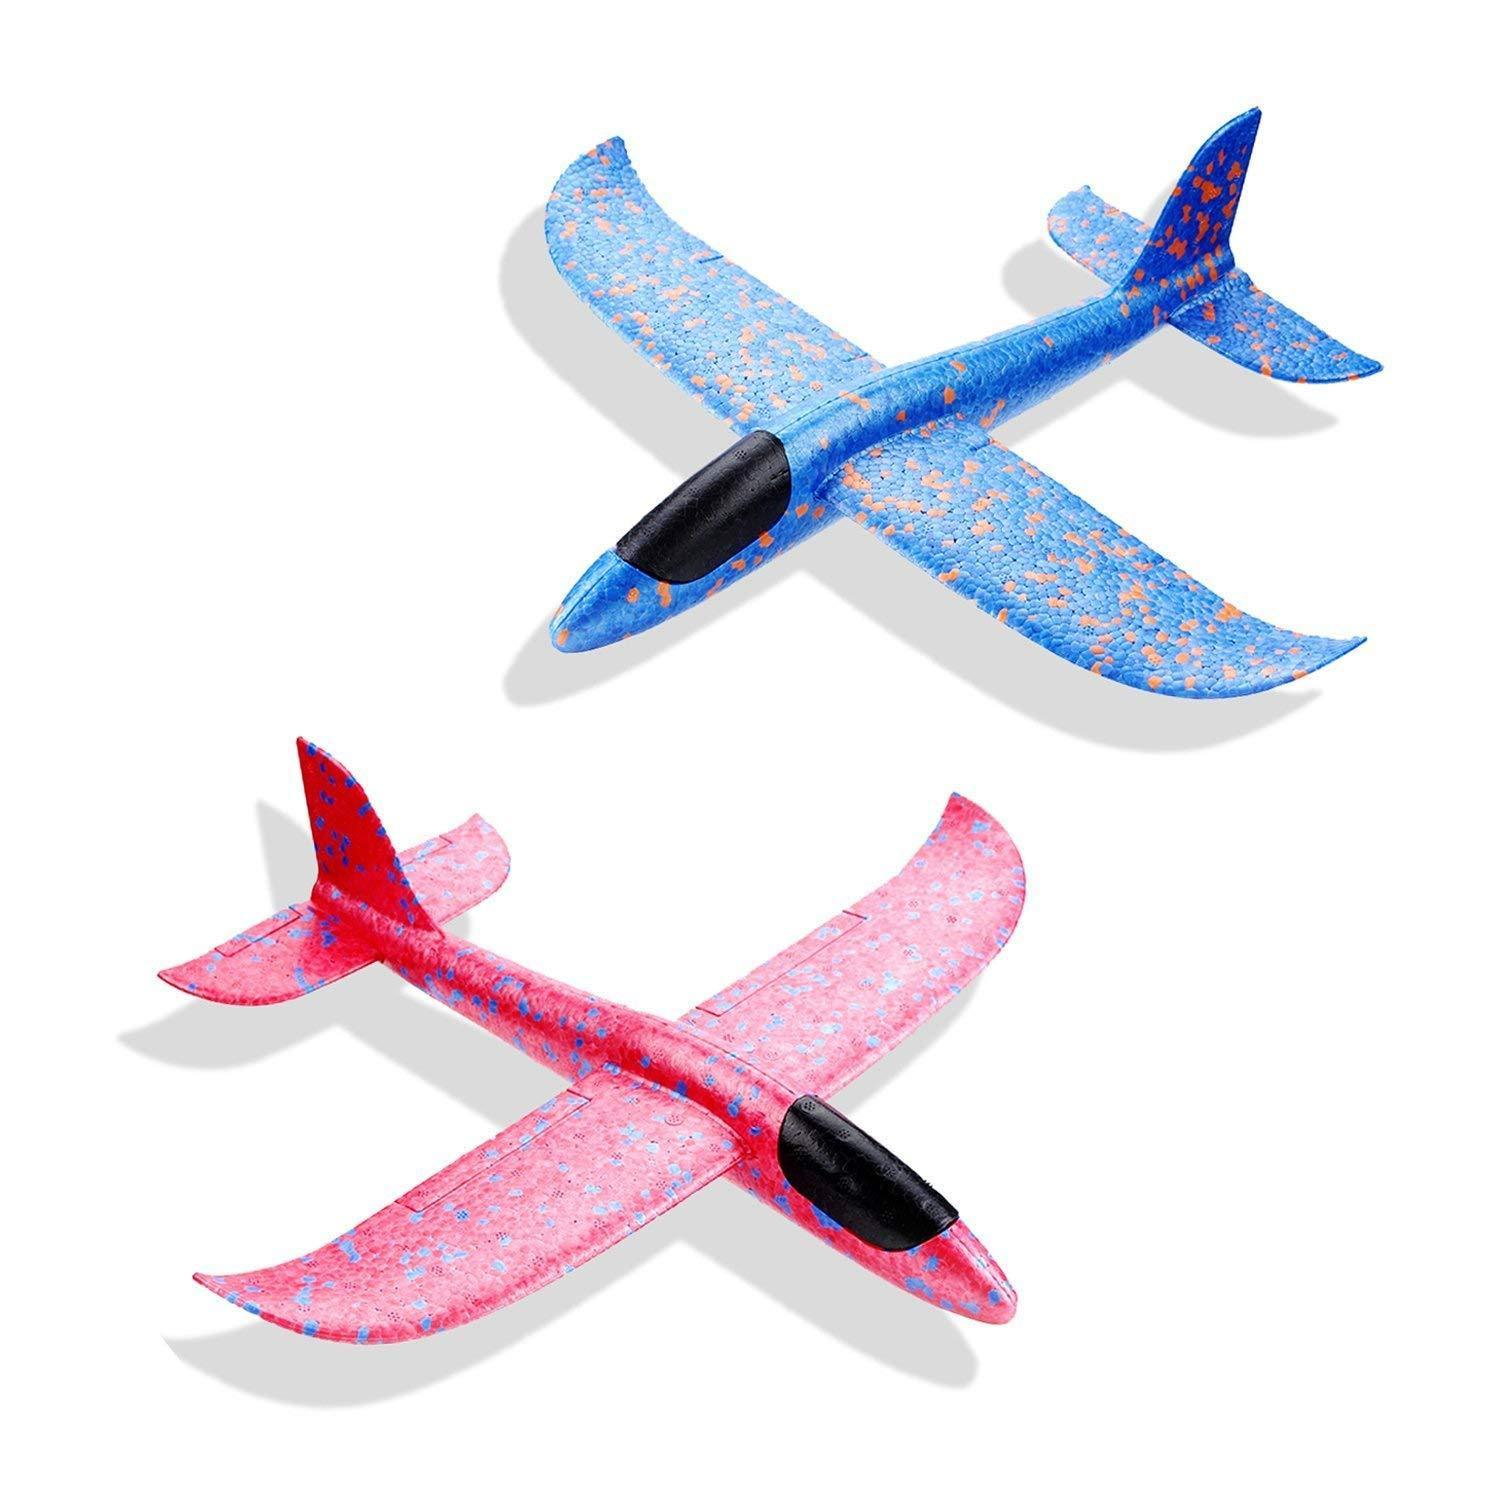 DIY Hand-Throw Foam Aeroplane Model **70% Off Today ONLY!**